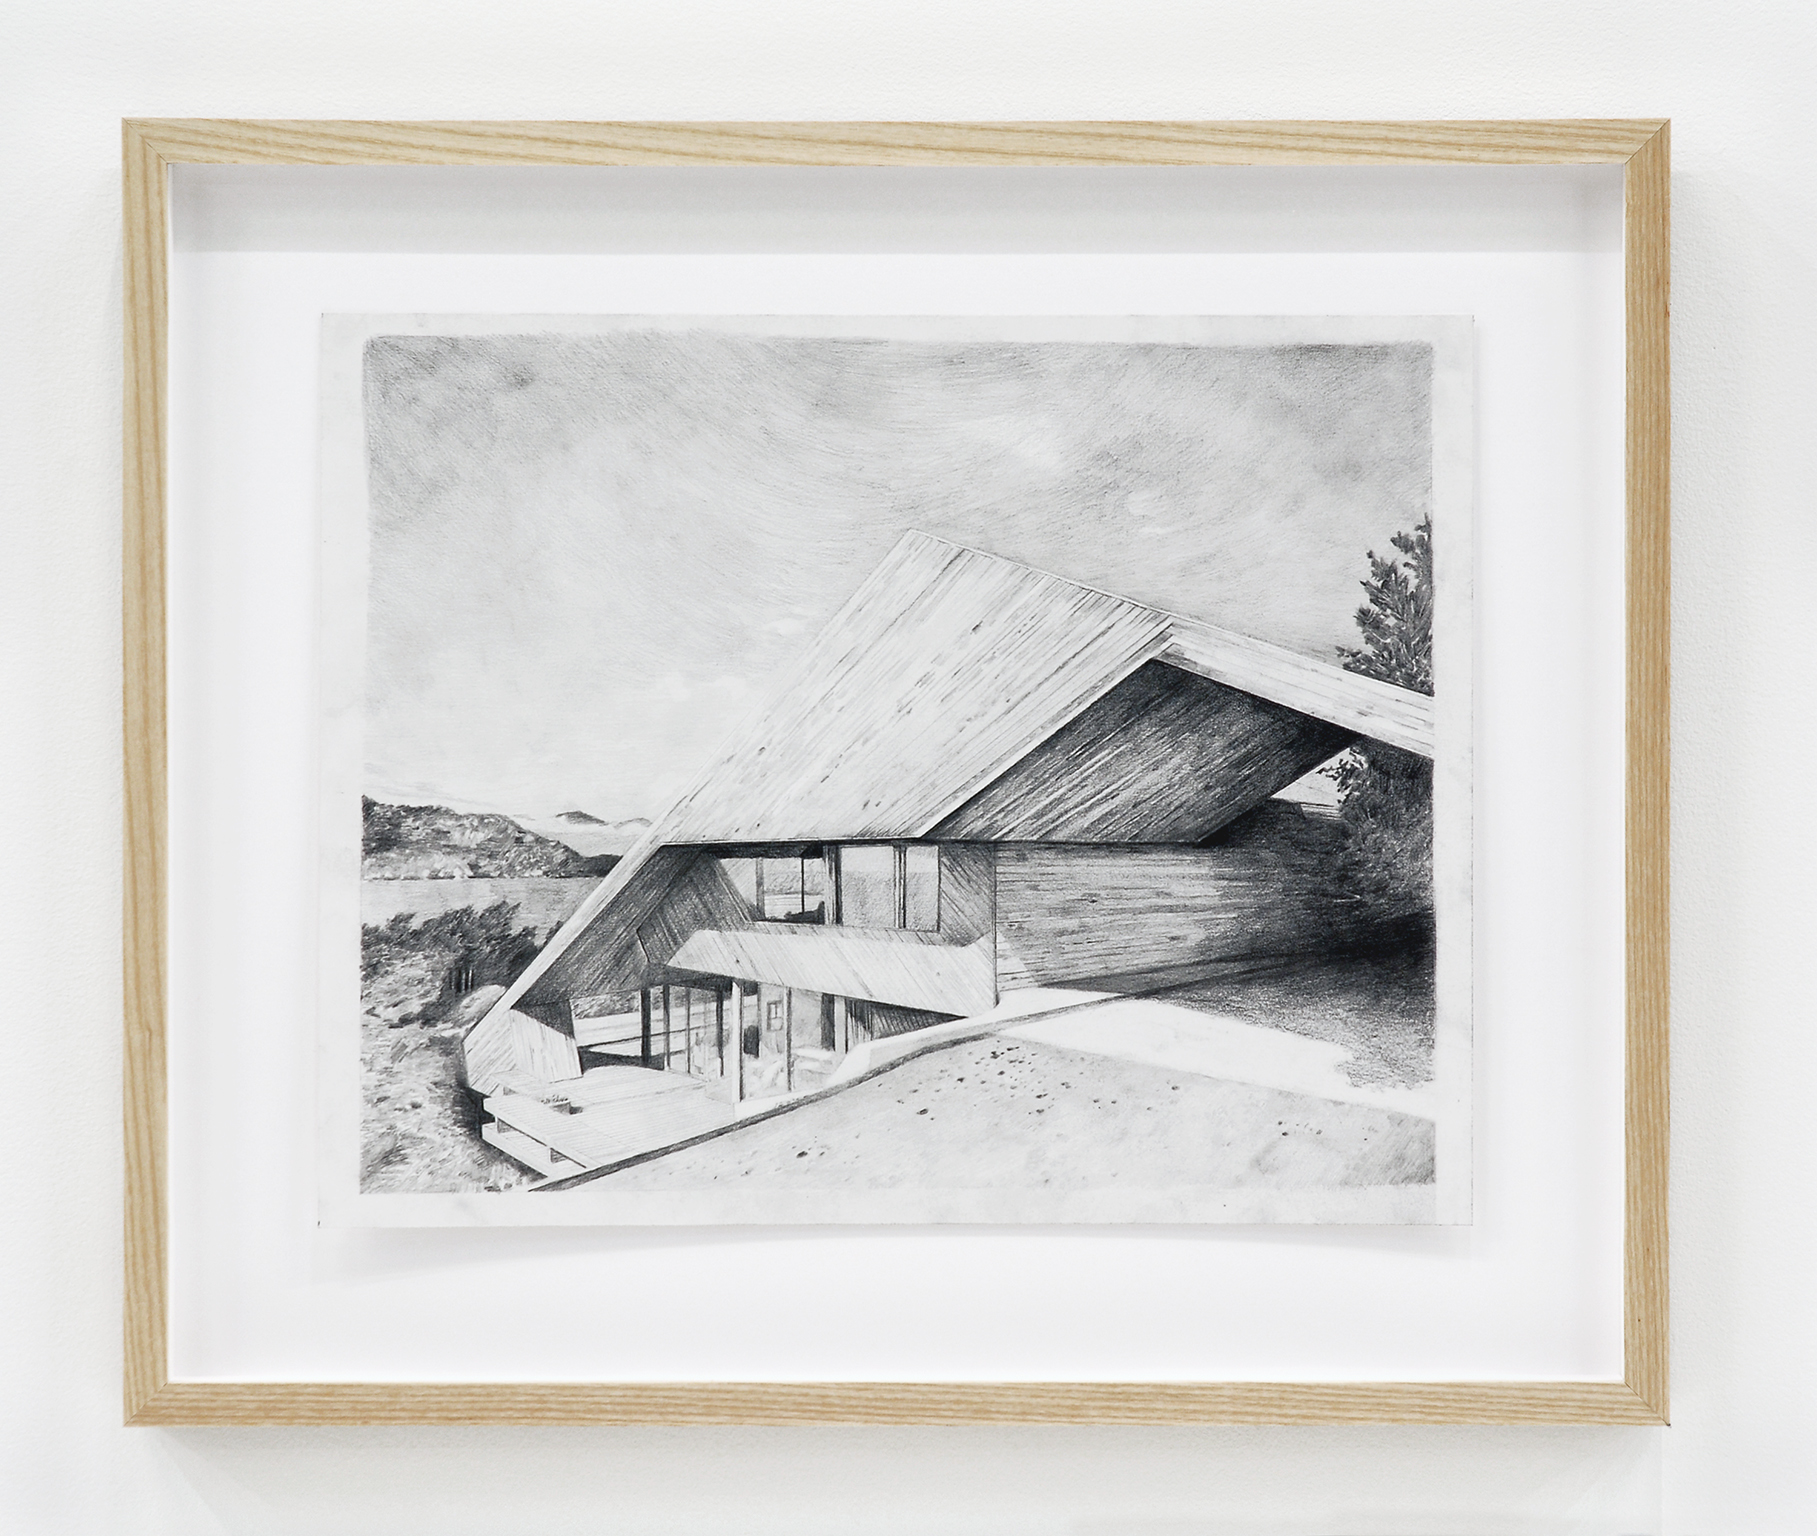 Alex Morrison, The Poetics of Grey (No. 10), 2007, graphite on paper, 18 x 21 in. (45 x 53 cm) by